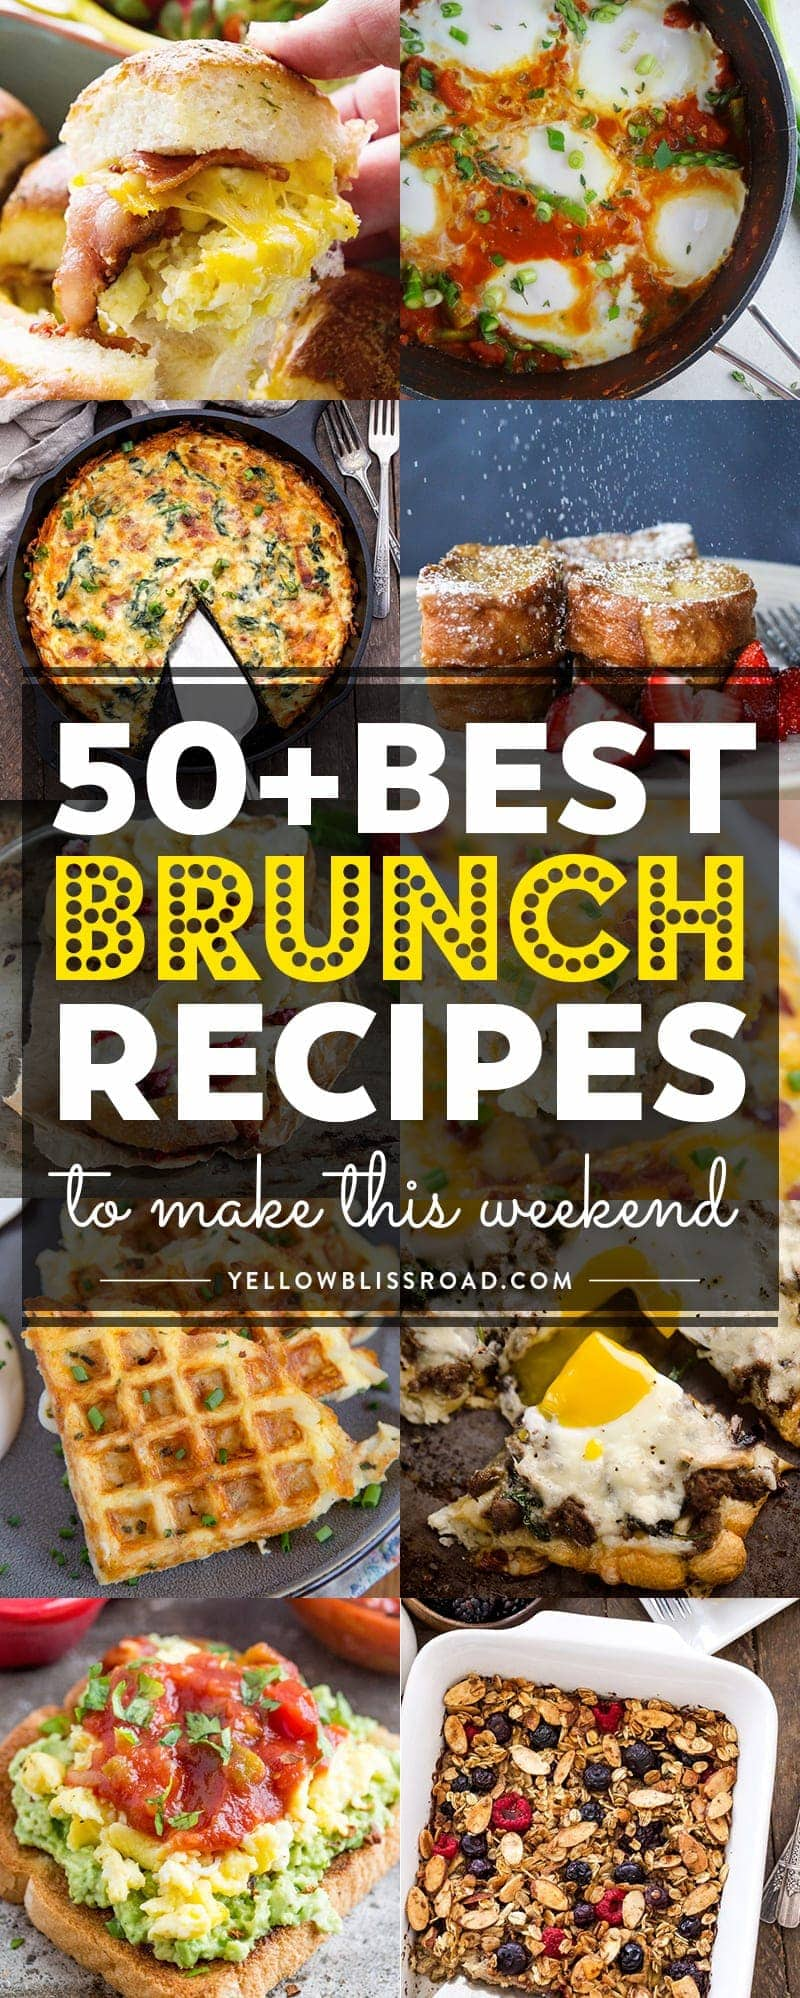 Awe Inspiring 50 Of The Best Brunch Recipes To Make This Weekend Interior Design Ideas Helimdqseriescom